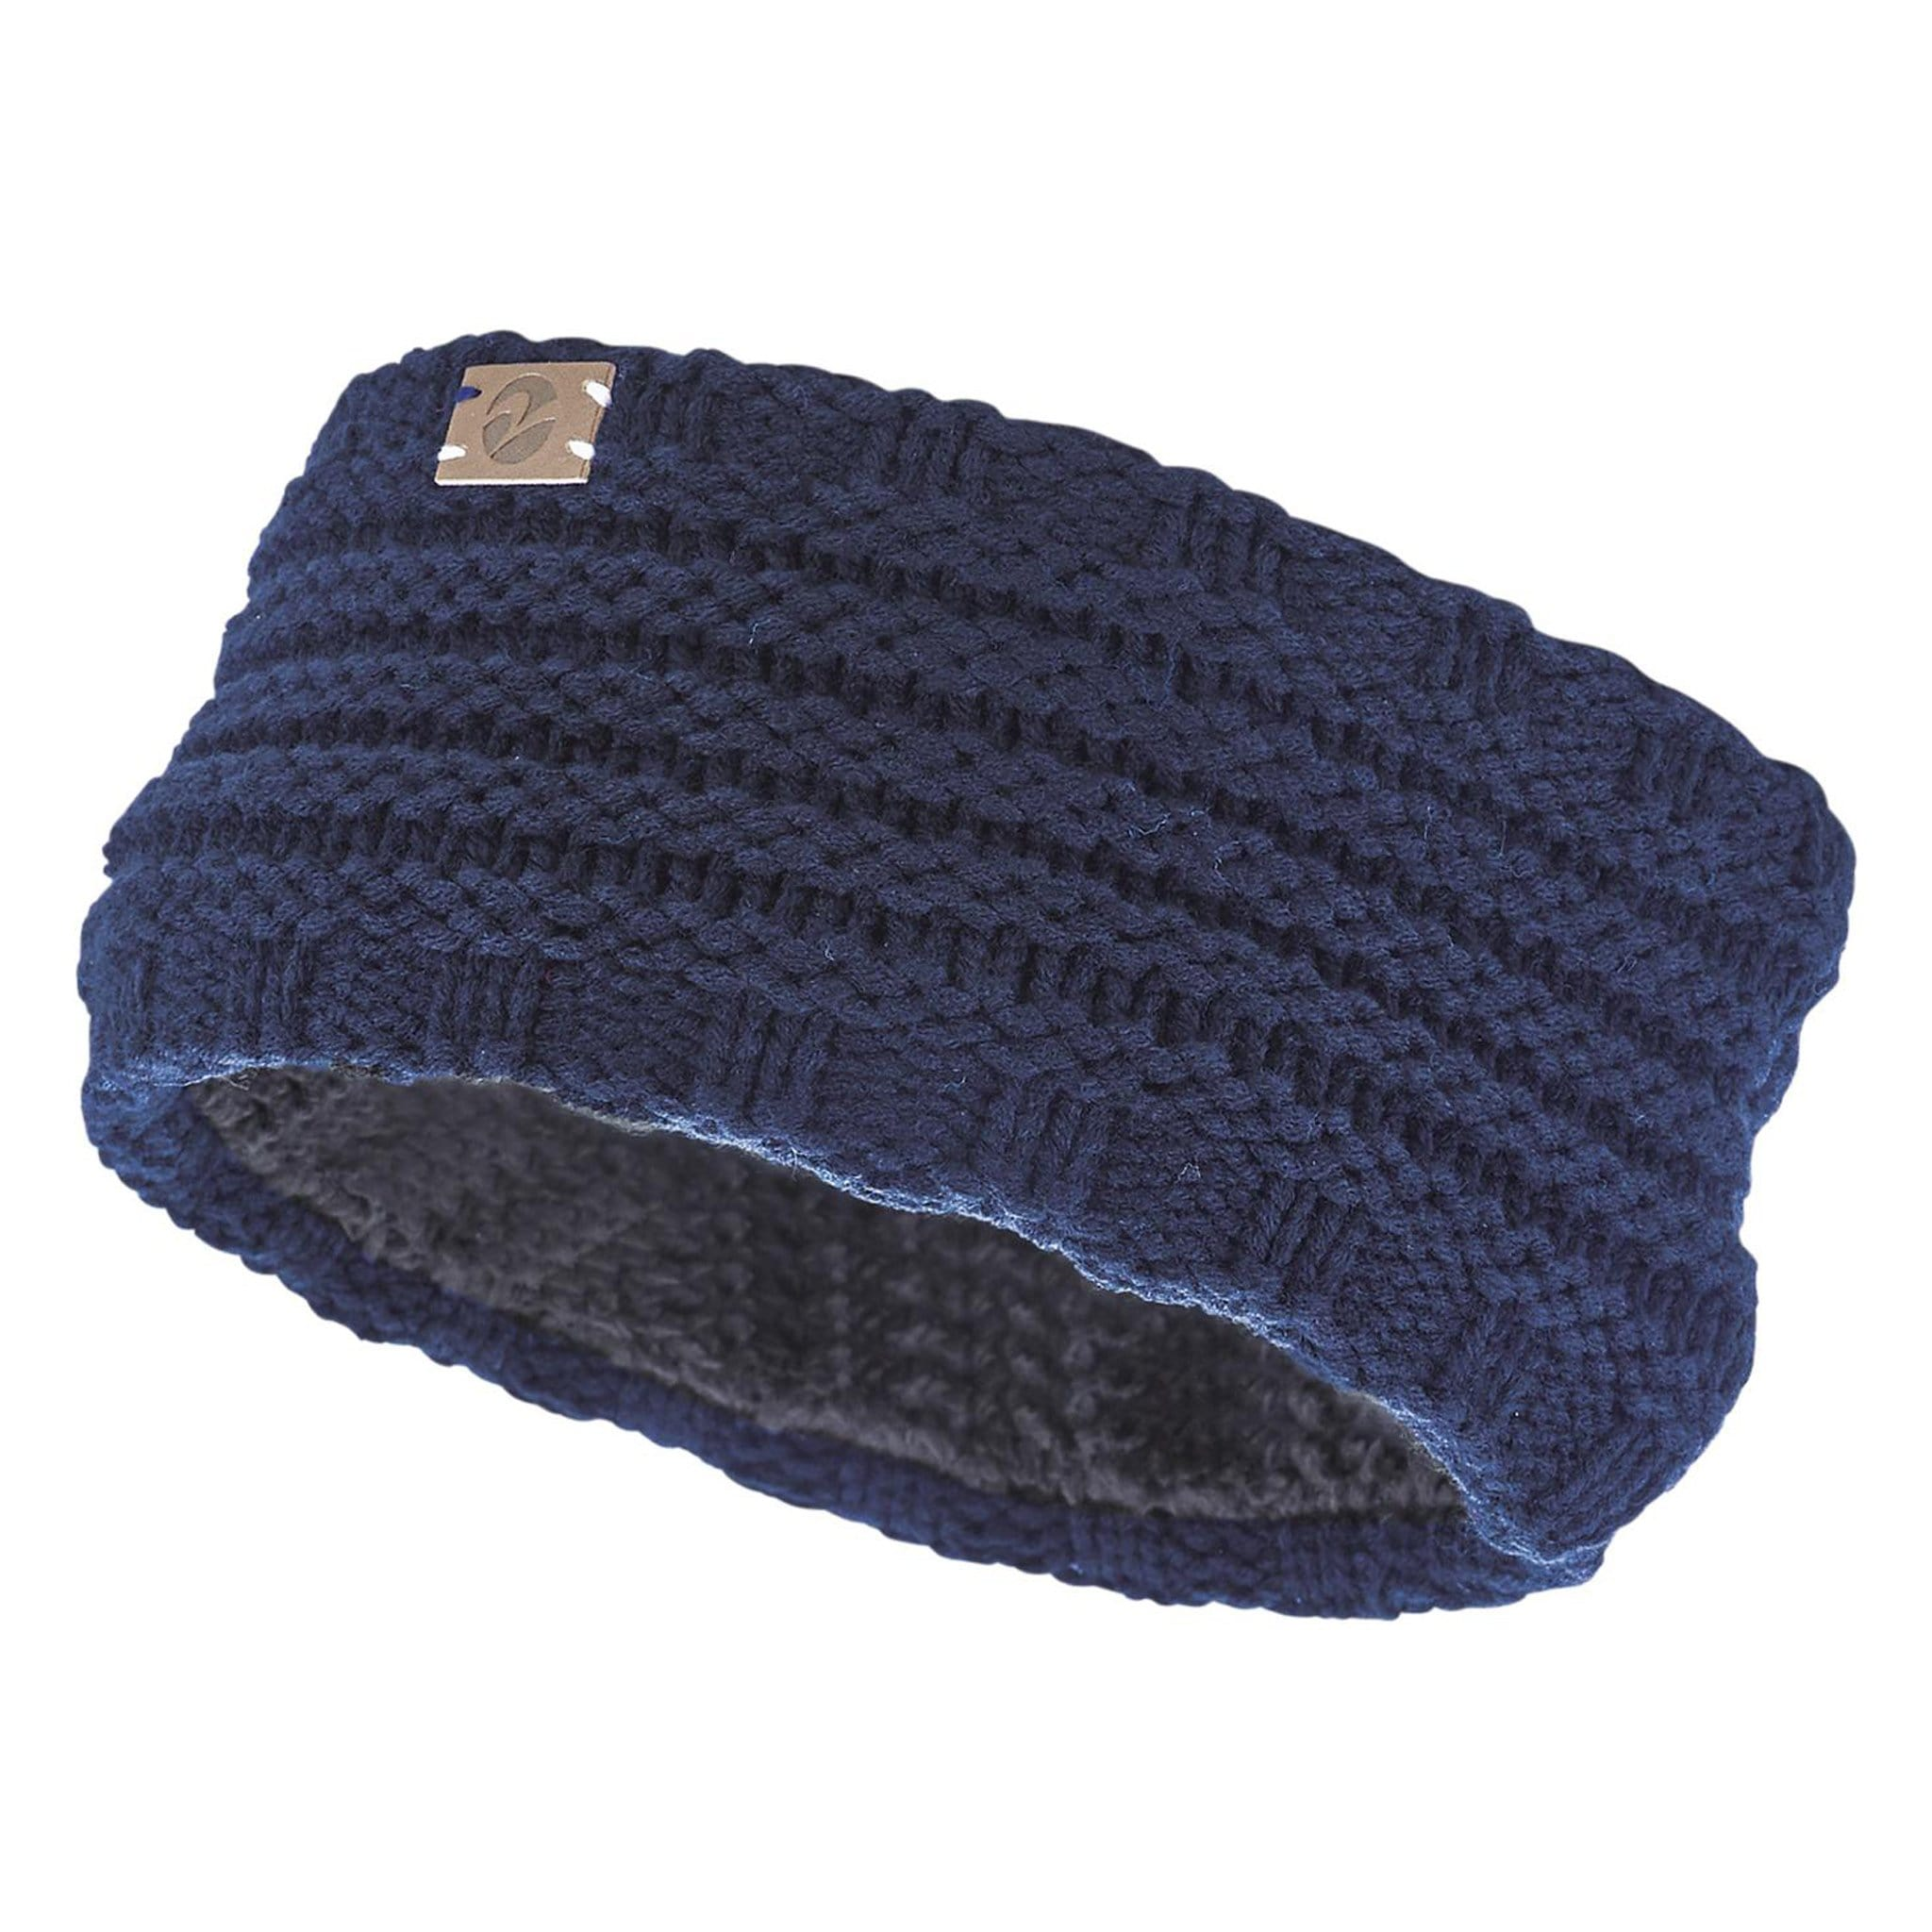 Busse Knitted Headband in Navy 719338